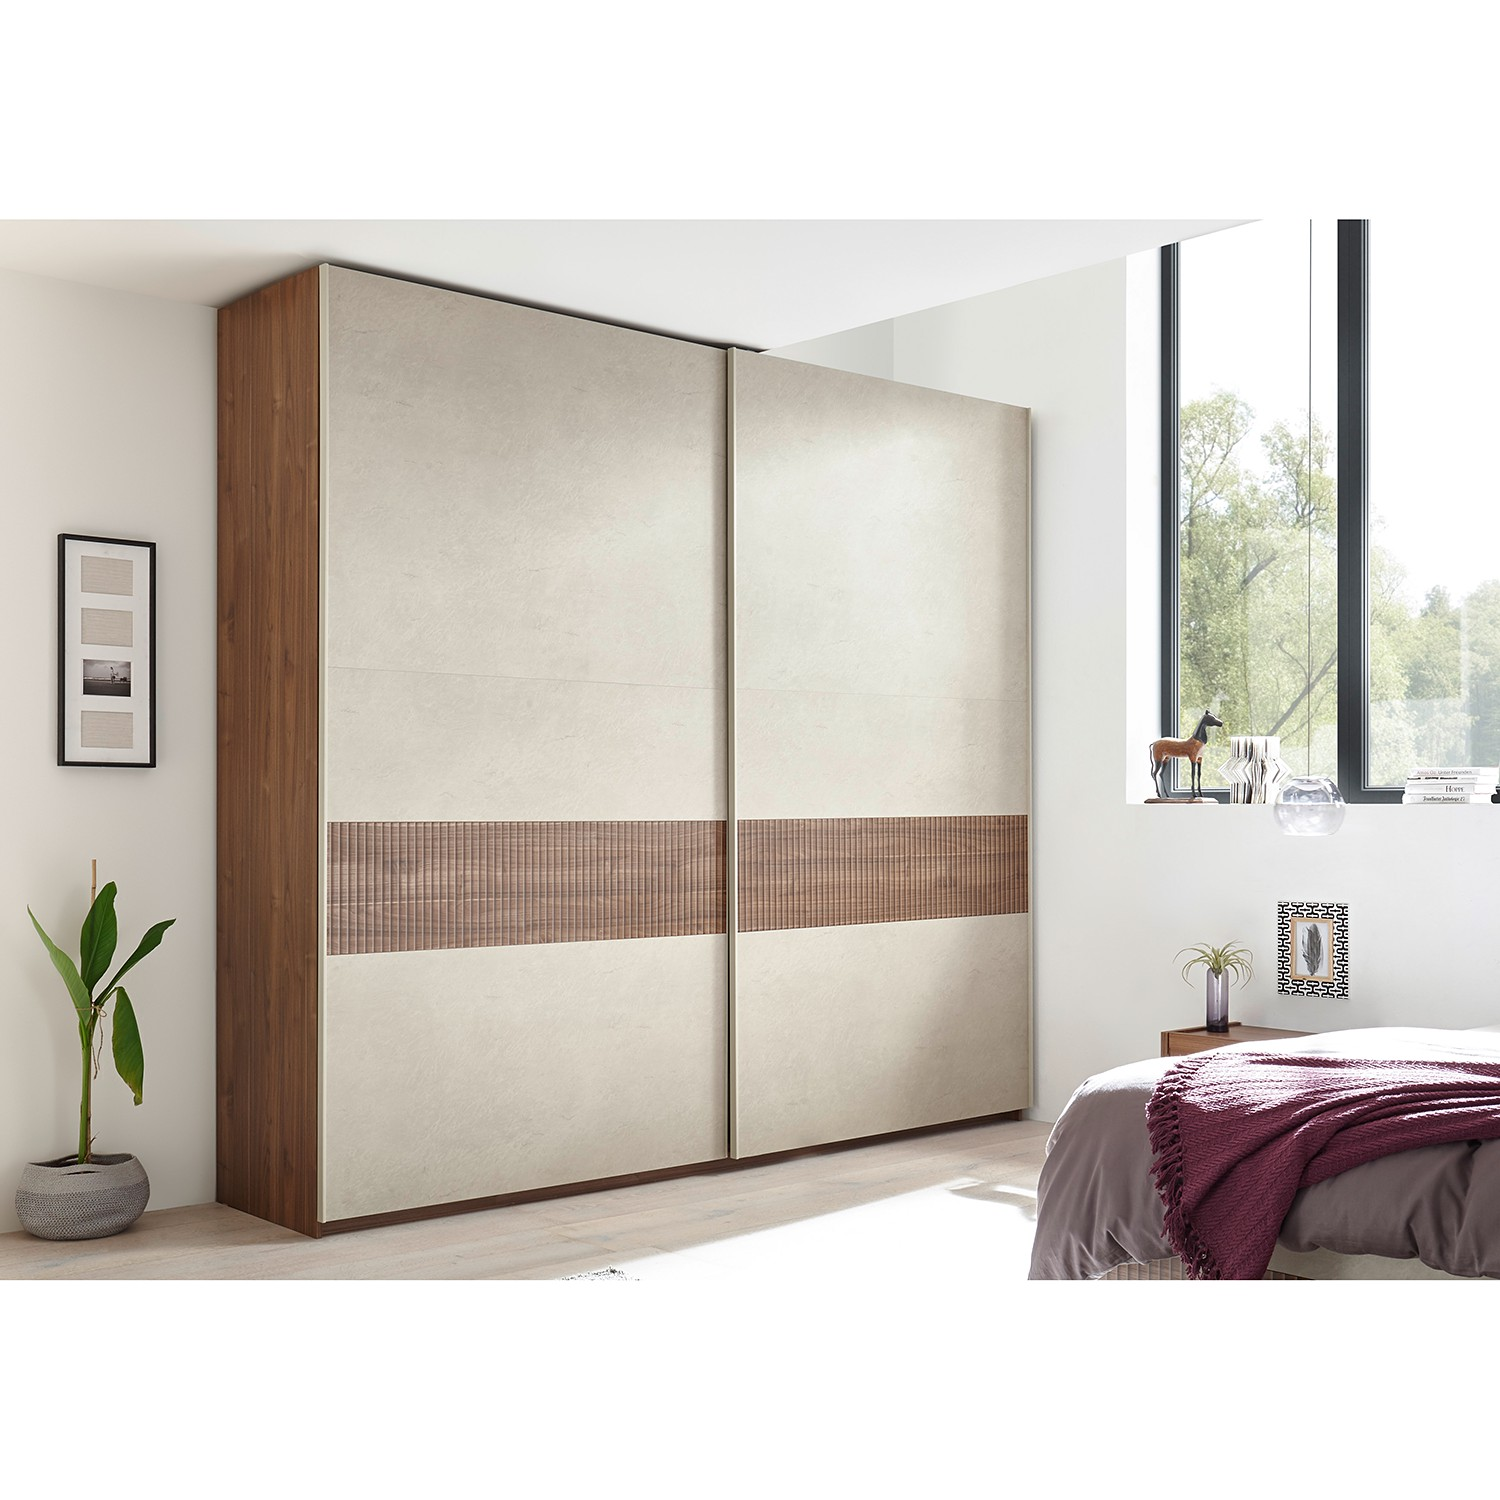 Armoire portes coulissantes Westwood II